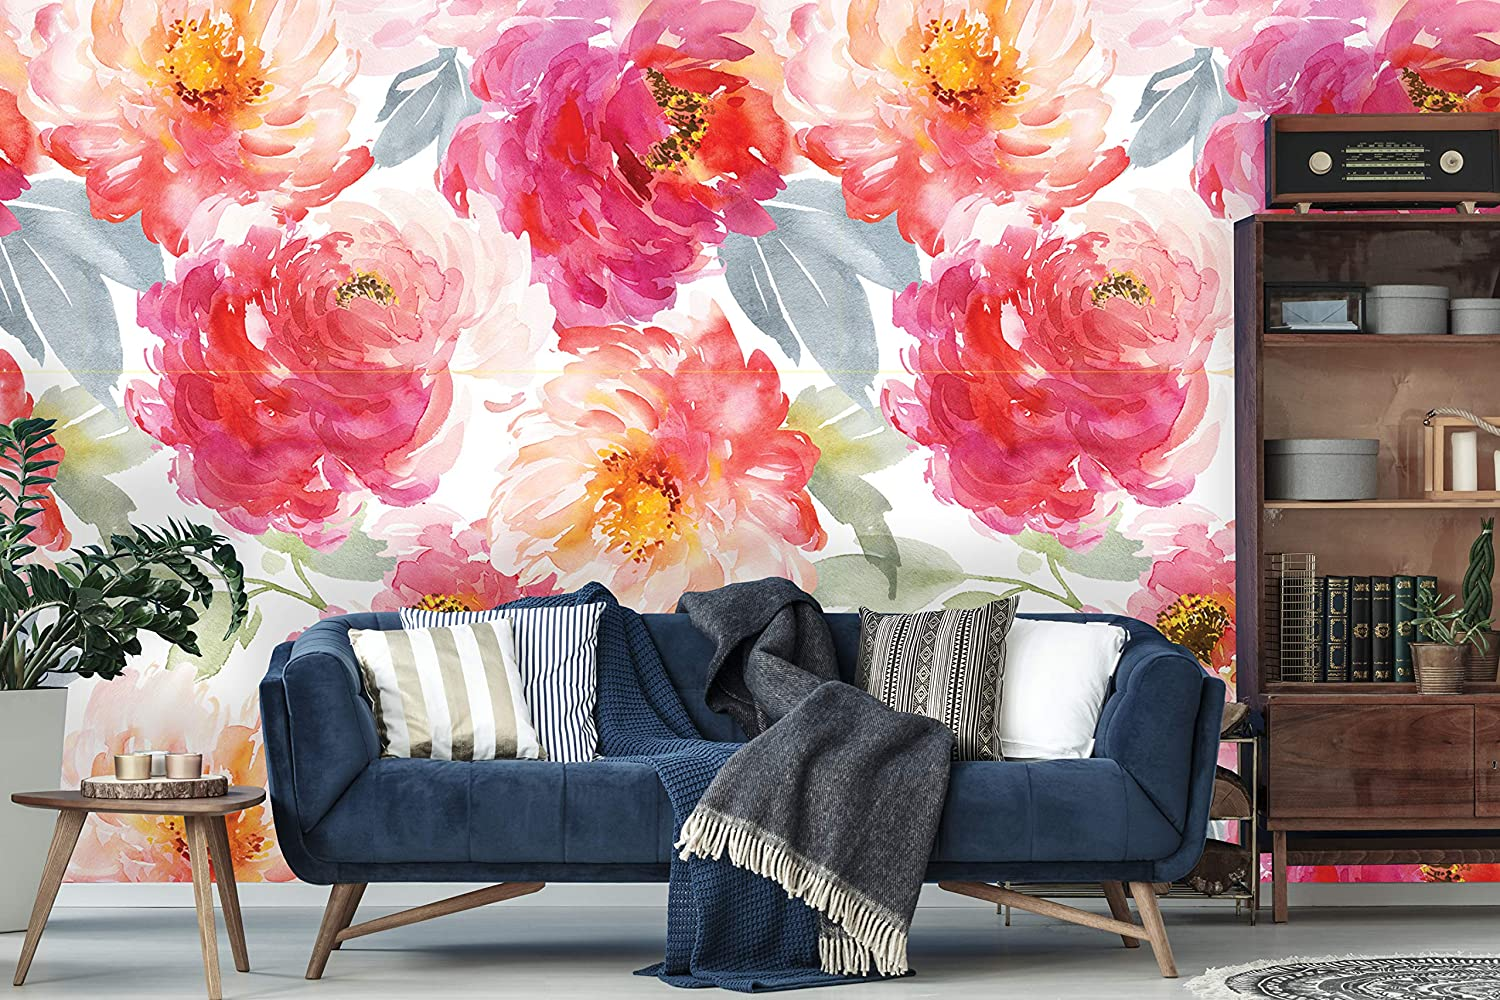 Removable Wallpaper Peel And Stick Floral Wallpaper Self Adhesive Watercolor Flowers Wallpaper Peonies Mural Sample 12 X 24 Amazon Com